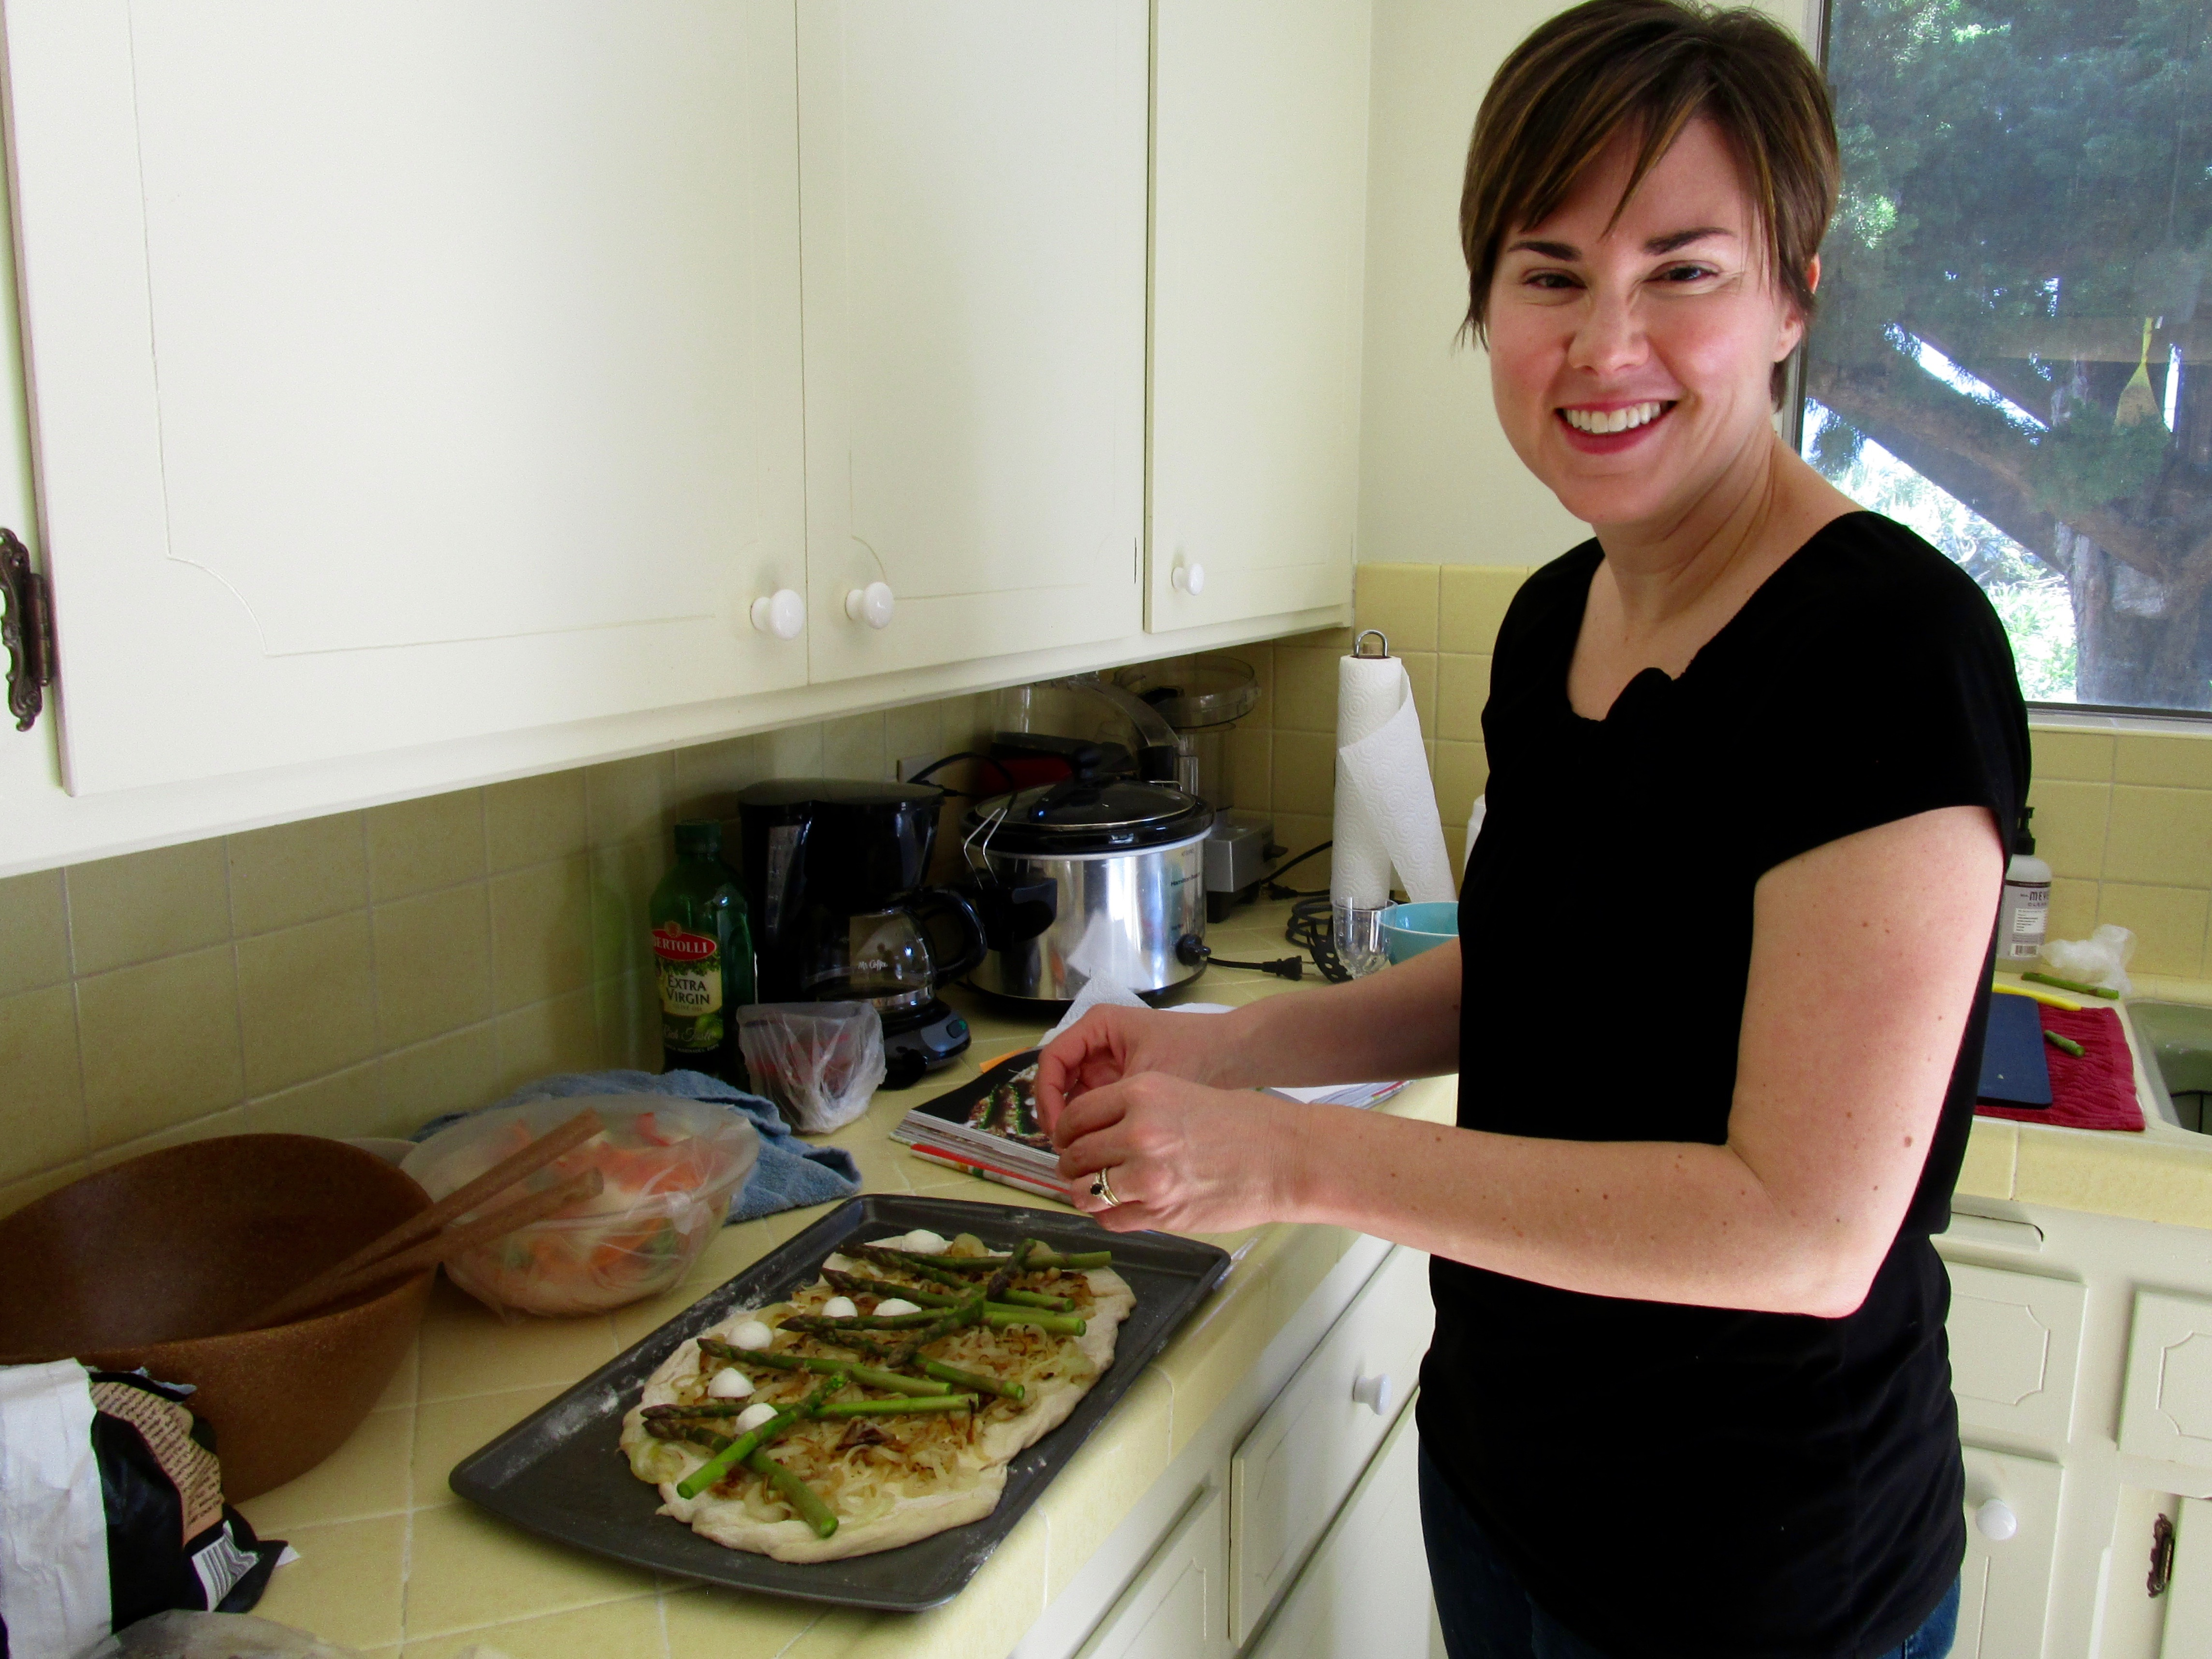 Katie Baillargeon, a UC Santa Barbara prof  and her family came for lunch. Our menu ibcluded Asparagus Pizza from River Cottage Veg.